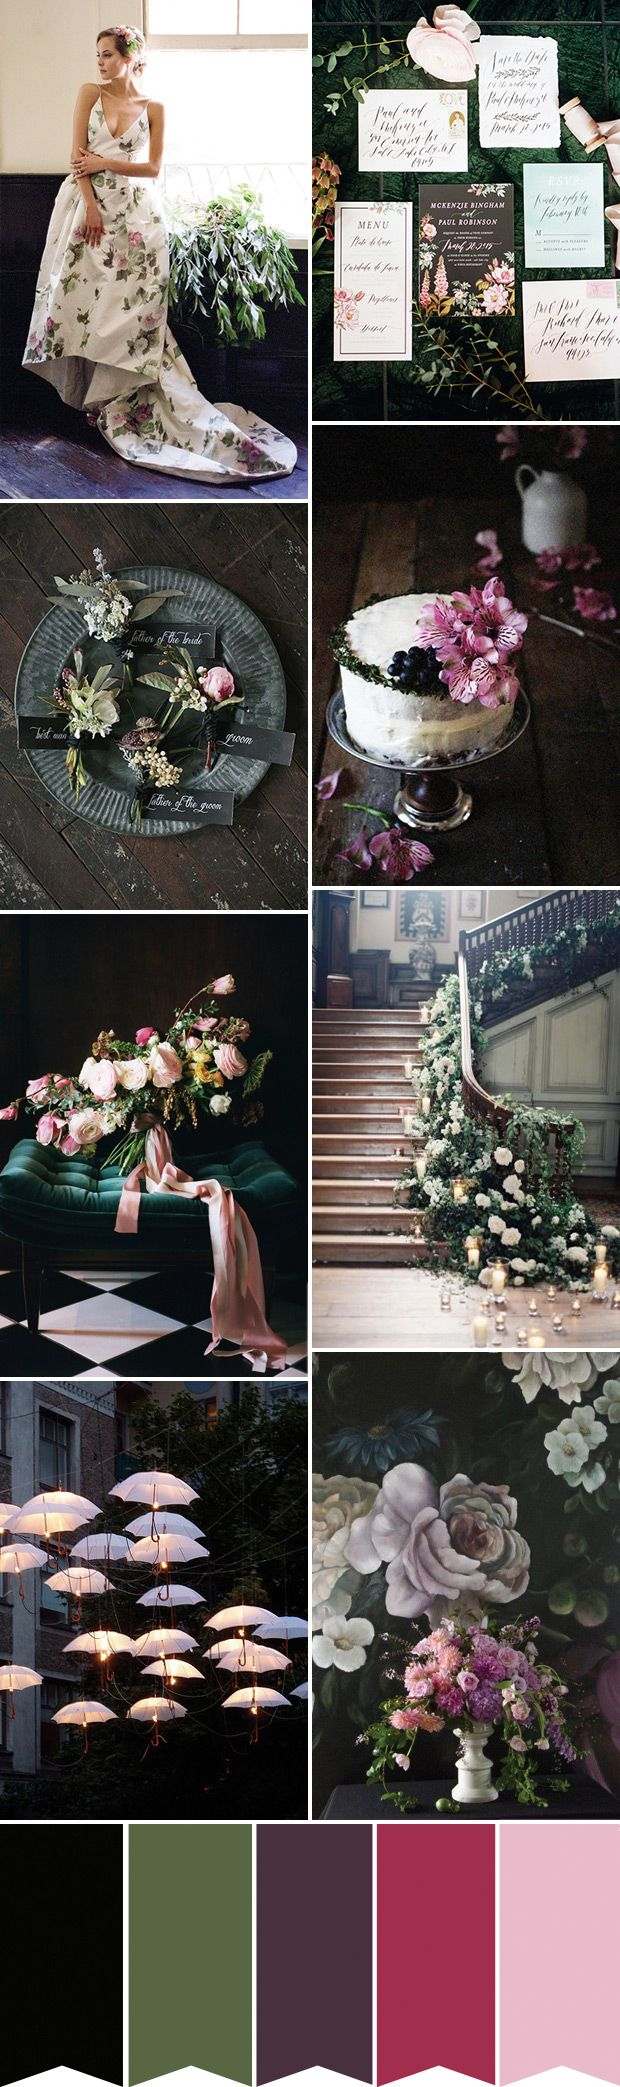 Daring and Dark Botanical Wedding Inspiration for dark wedding colour themes.